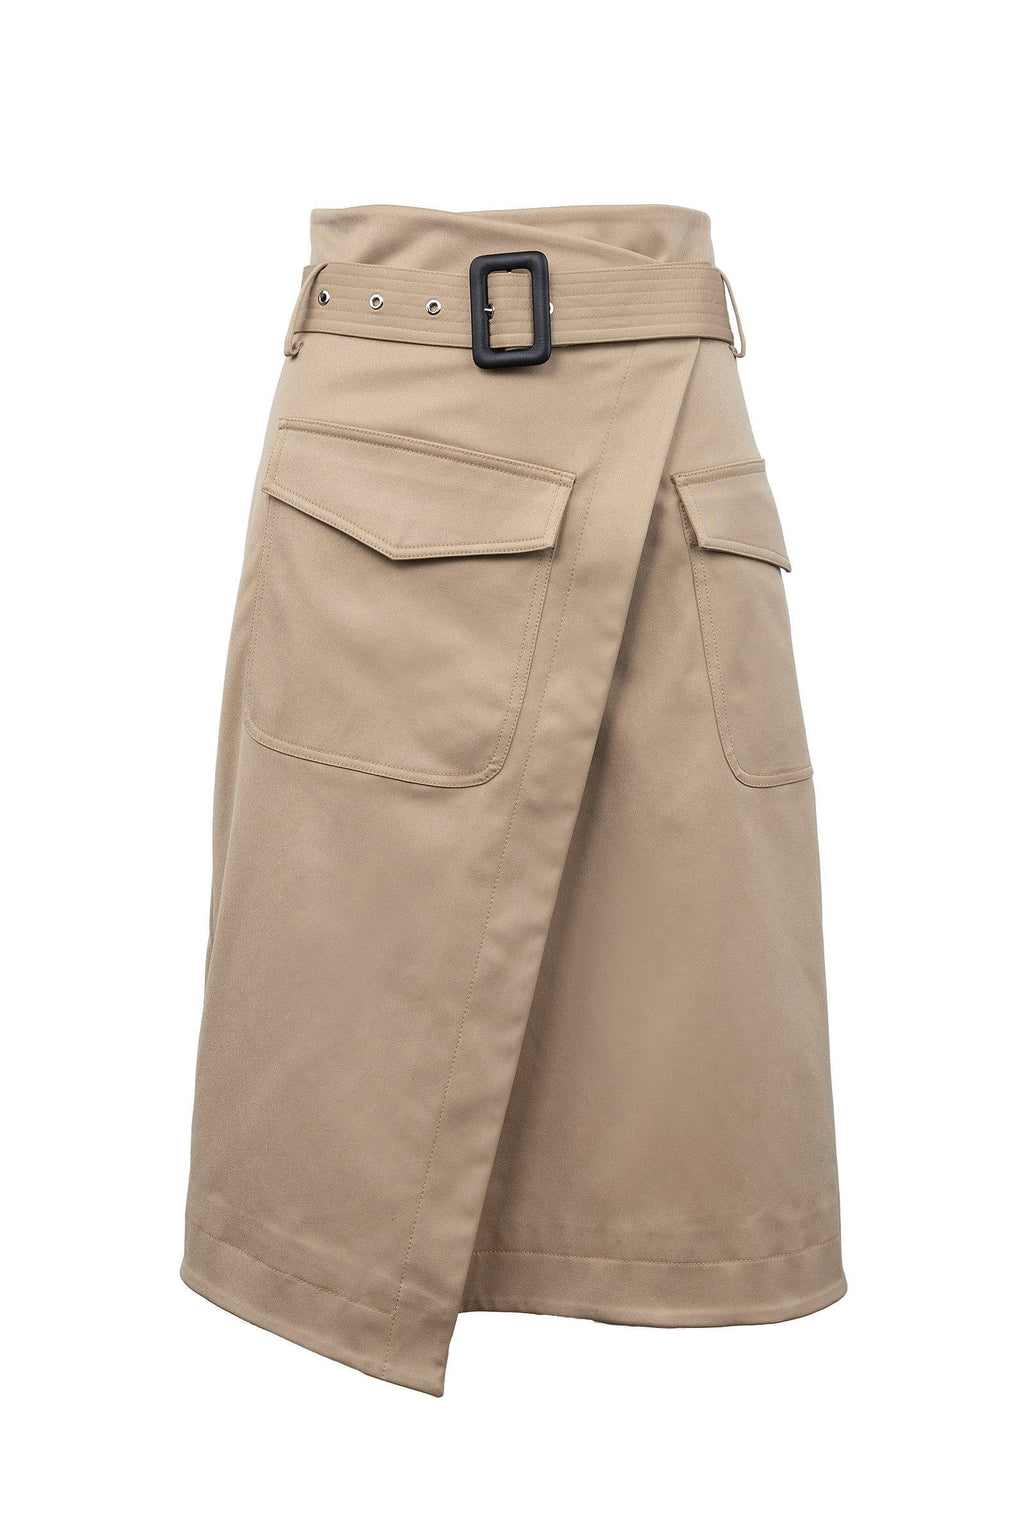 Morgan Tan Midi Skirt by J.ING Women's Skirts